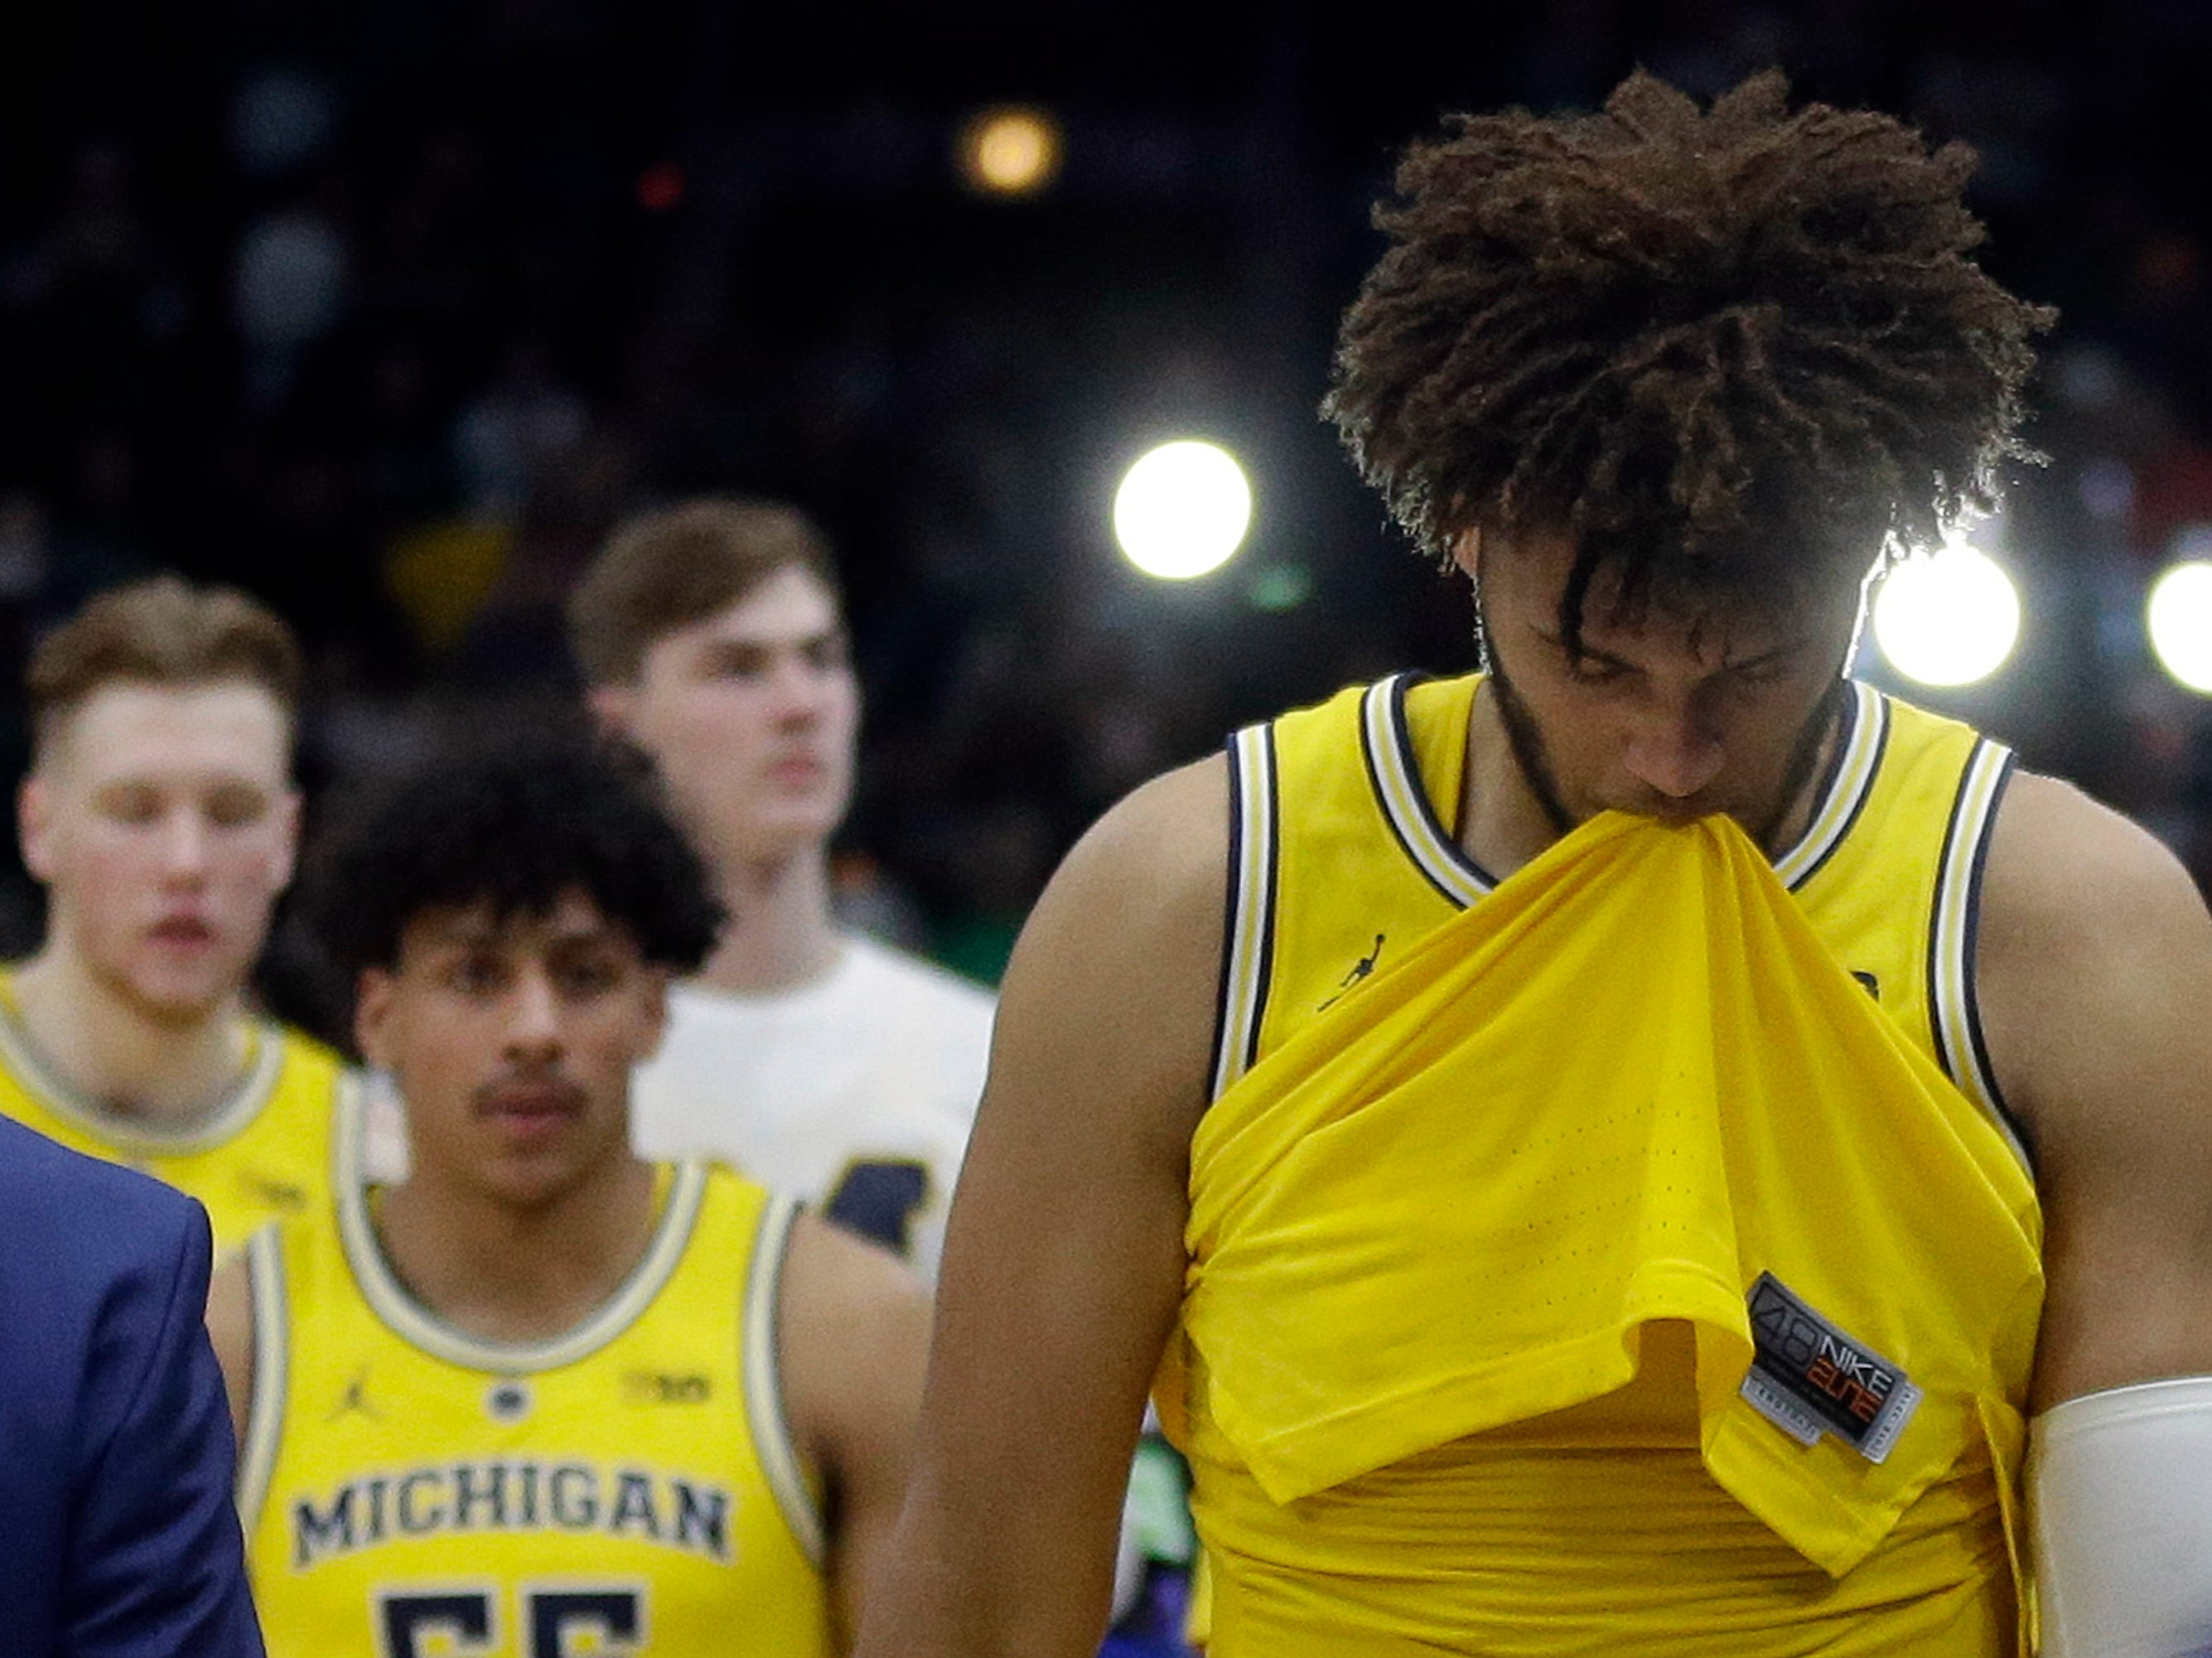 Michigan's Isaiah Livers, right looks down as he and his teammates walk off the court after the team's 65-60 loss to Michigan State in an NCAA college basketball championship game in the Big Ten Conference tournament, Sunday, March 17, 2019, in Chicago.